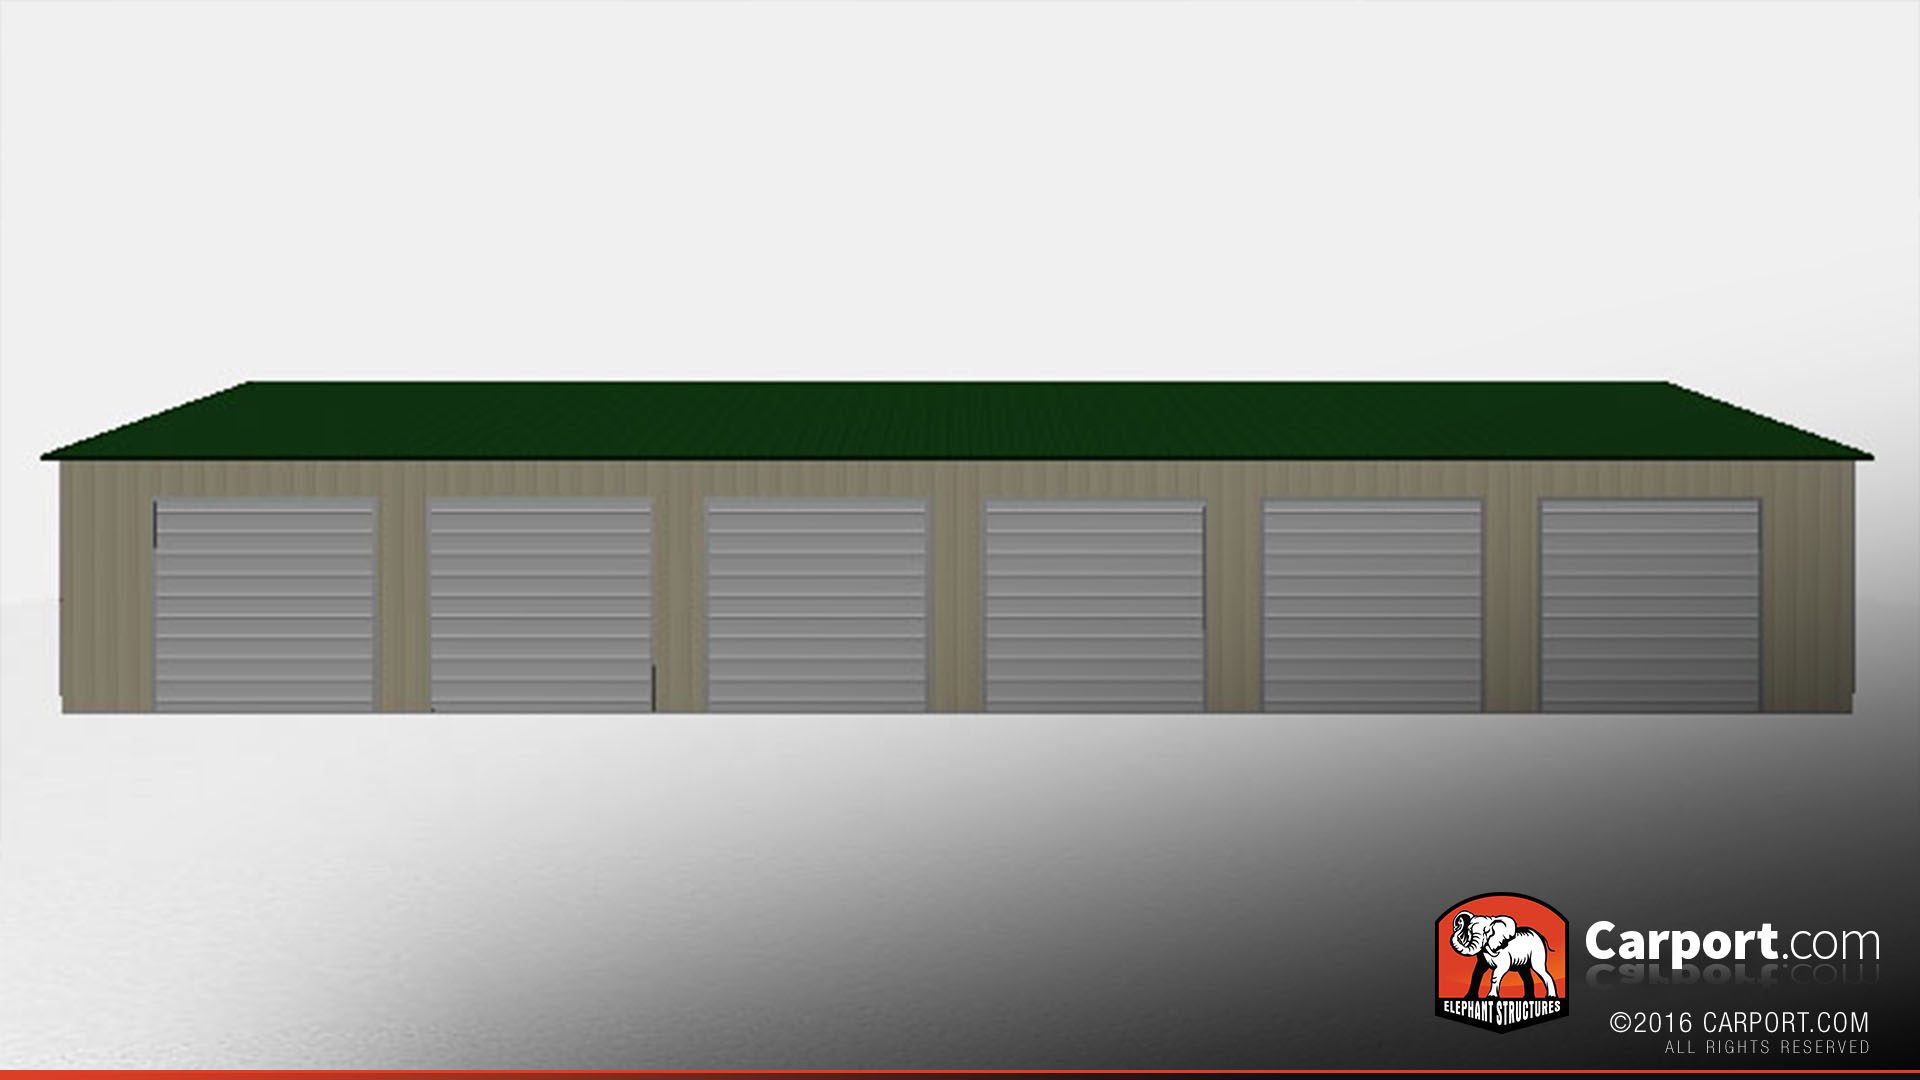 36x81 steel garage drive through 1 - 6 Car Garage